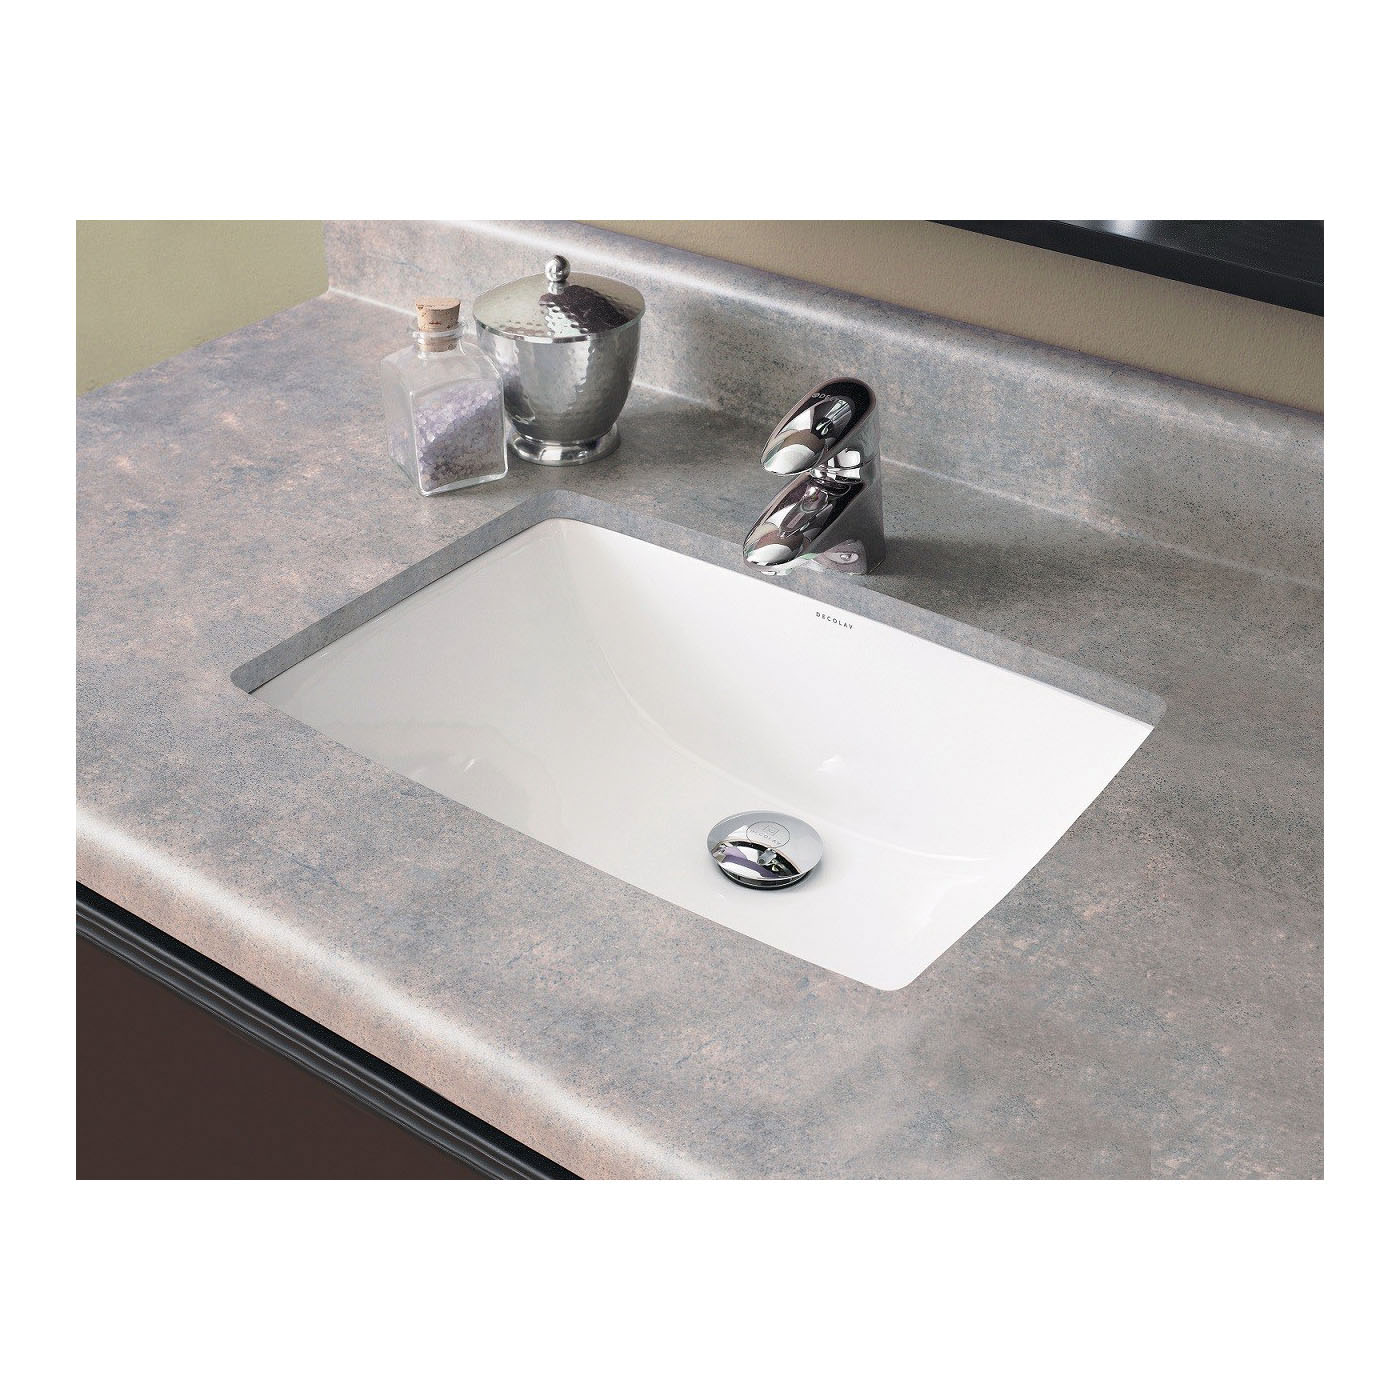 DECOLAV® 1402-CWH Classically Redefined® Bathroom Sink With Overflow, Rectangular, 20-1/4 in W x 14-1/4 in D x 8-1/4 in H, Under Mount, Vitreous China, Ceramic White, Import